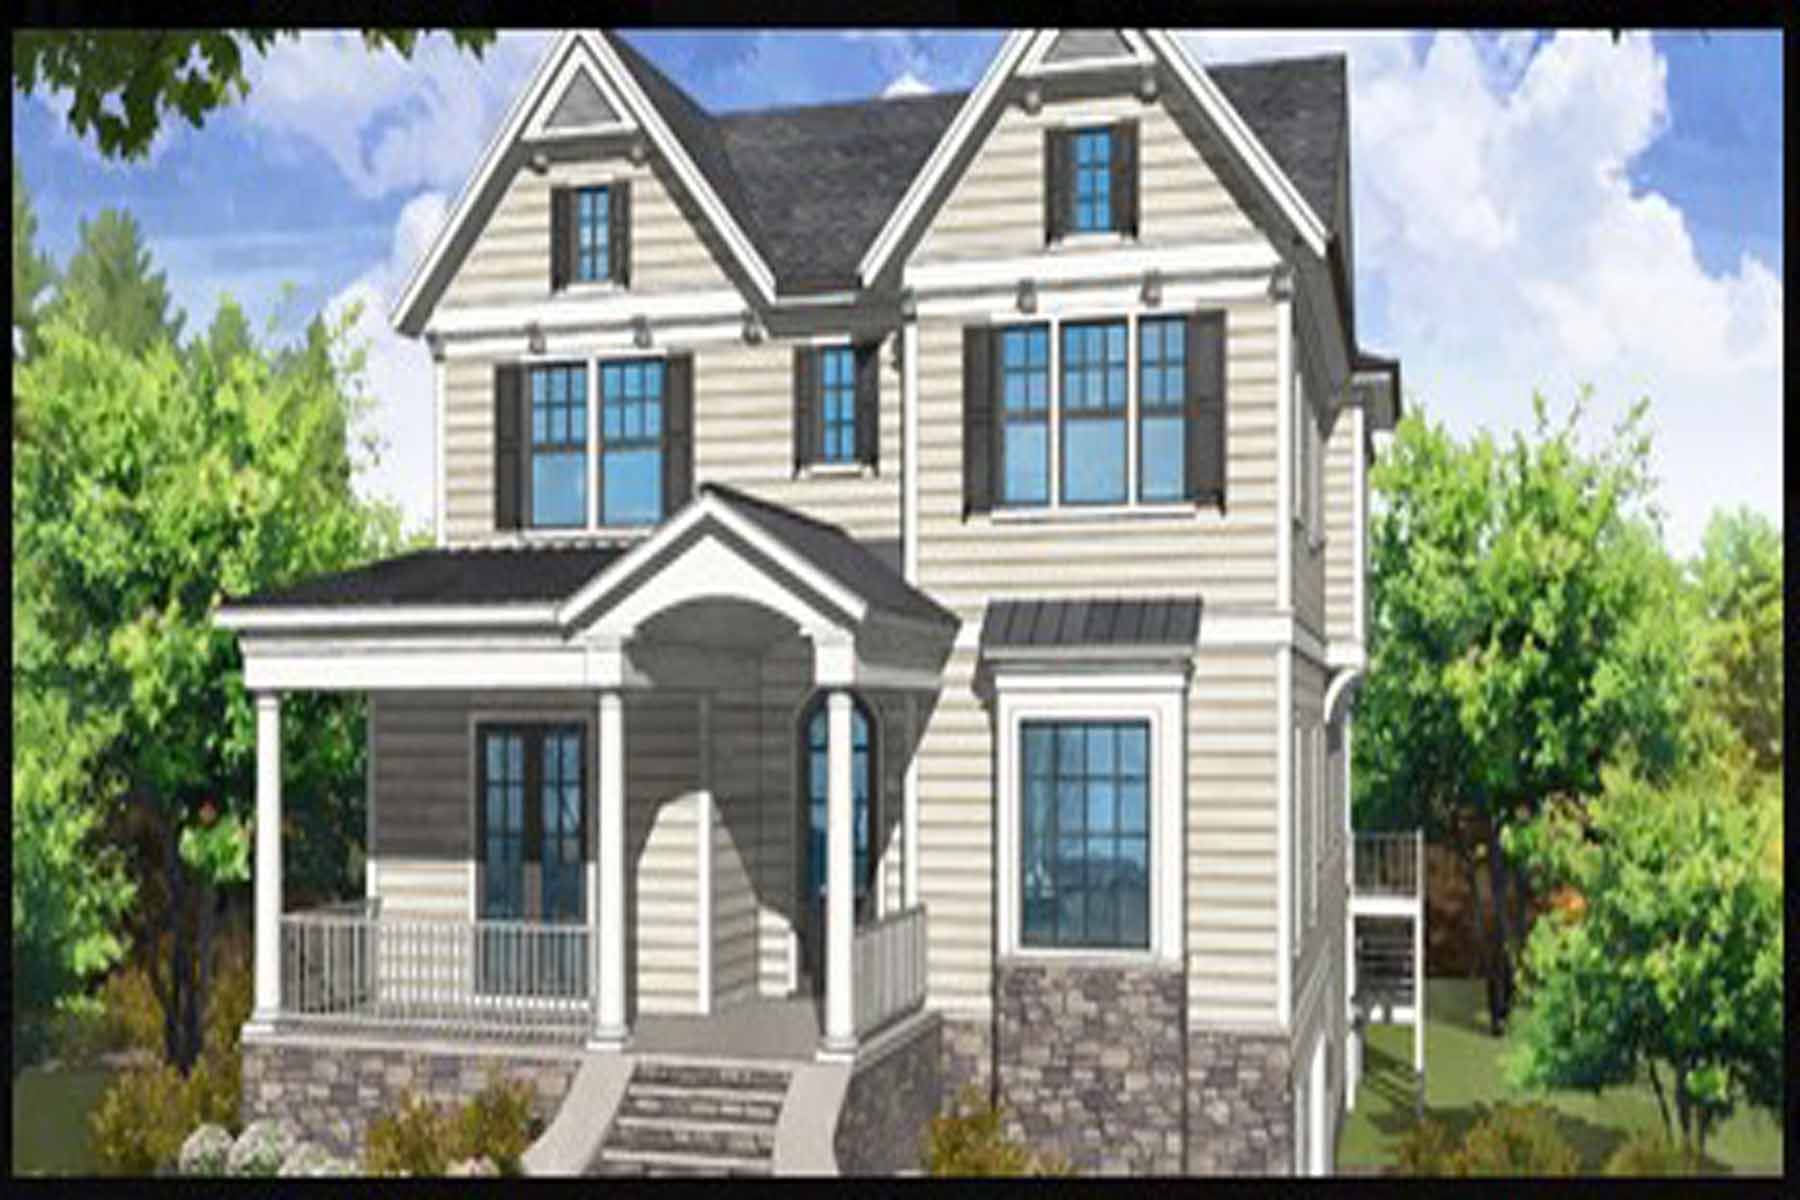 Moradia para Venda às New construction by JackBilt Homes. 870 Wildwood Road NE Morningside, Atlanta, Geórgia, 30324 Estados Unidos